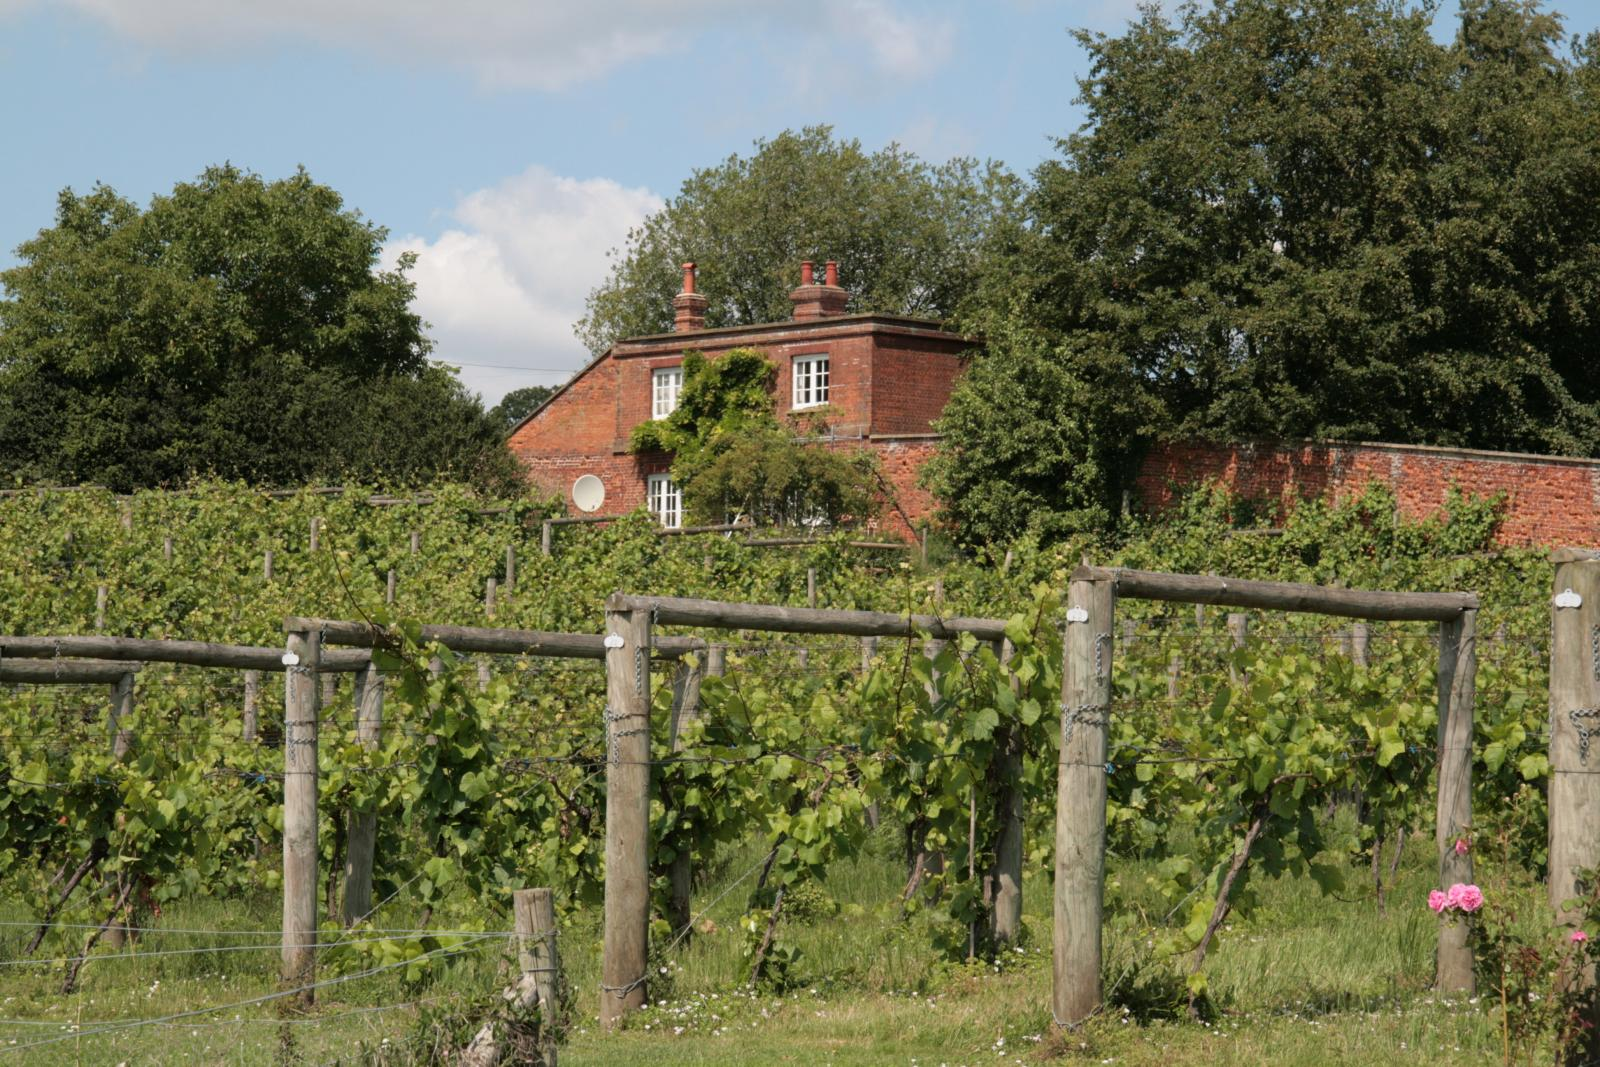 Wine stay in England - England - Wine regions - 2